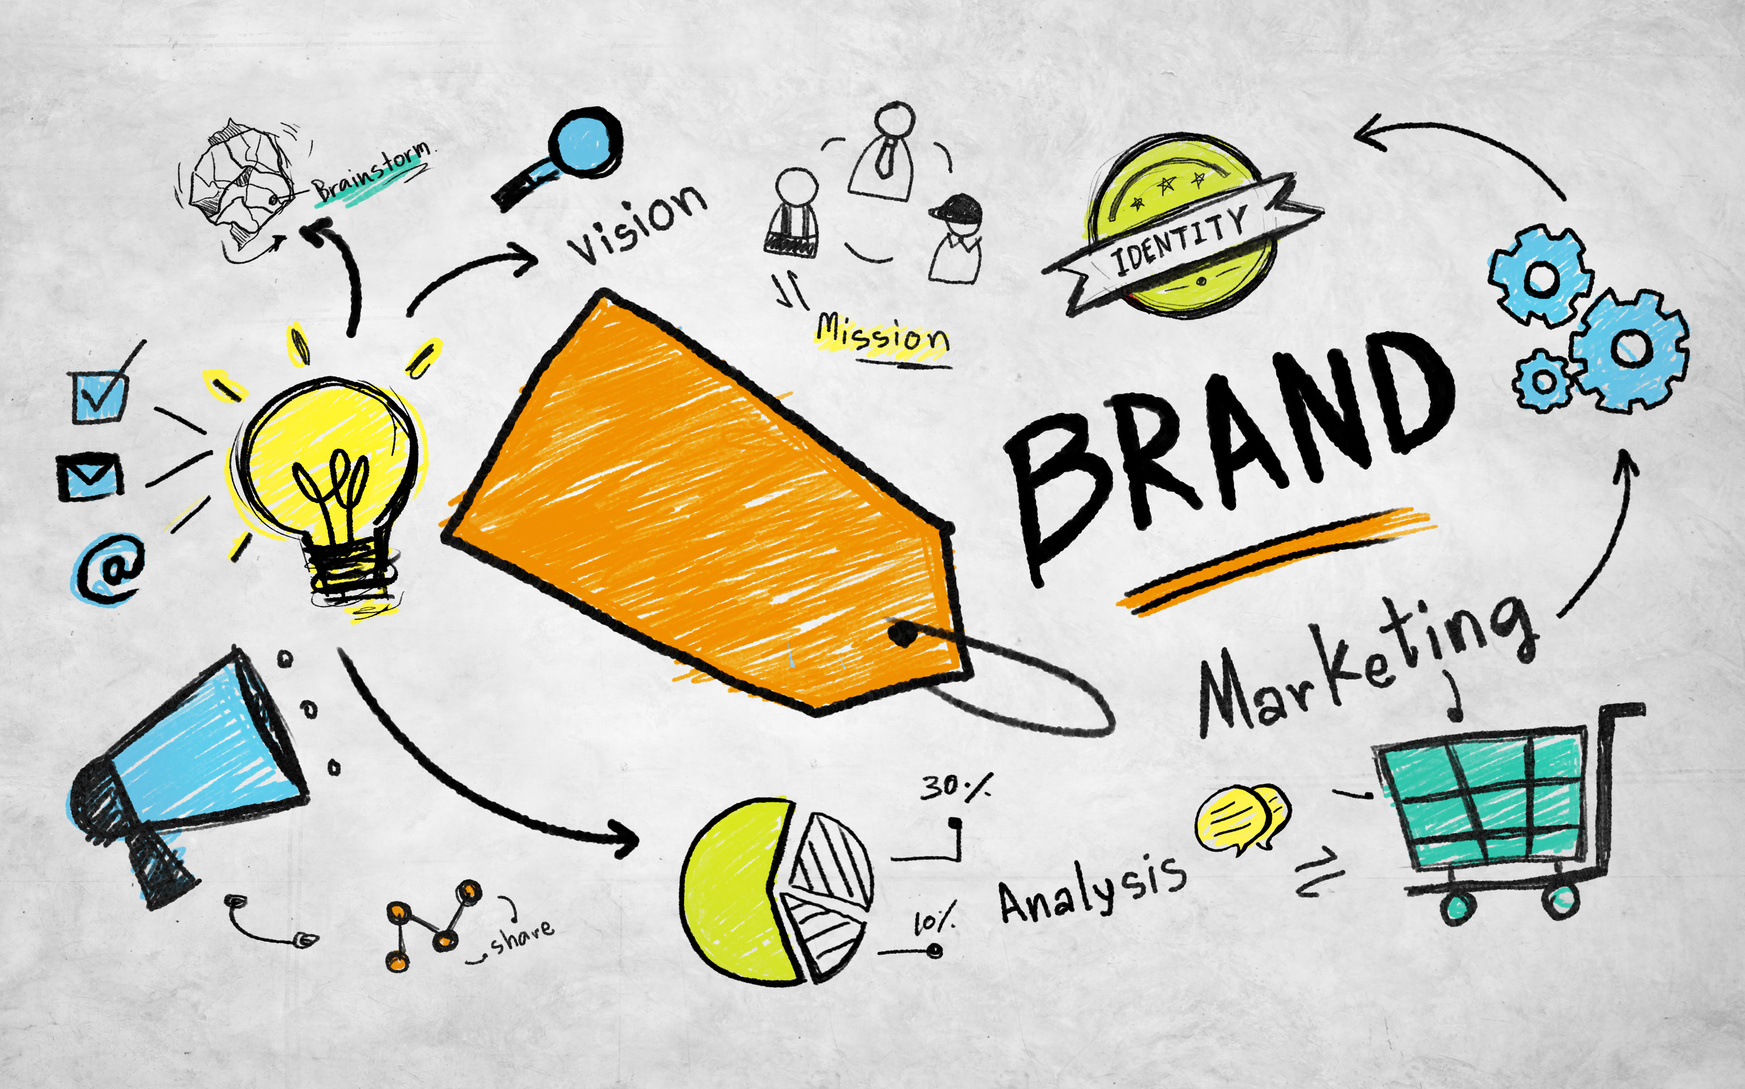 Company Branding - Getting Started